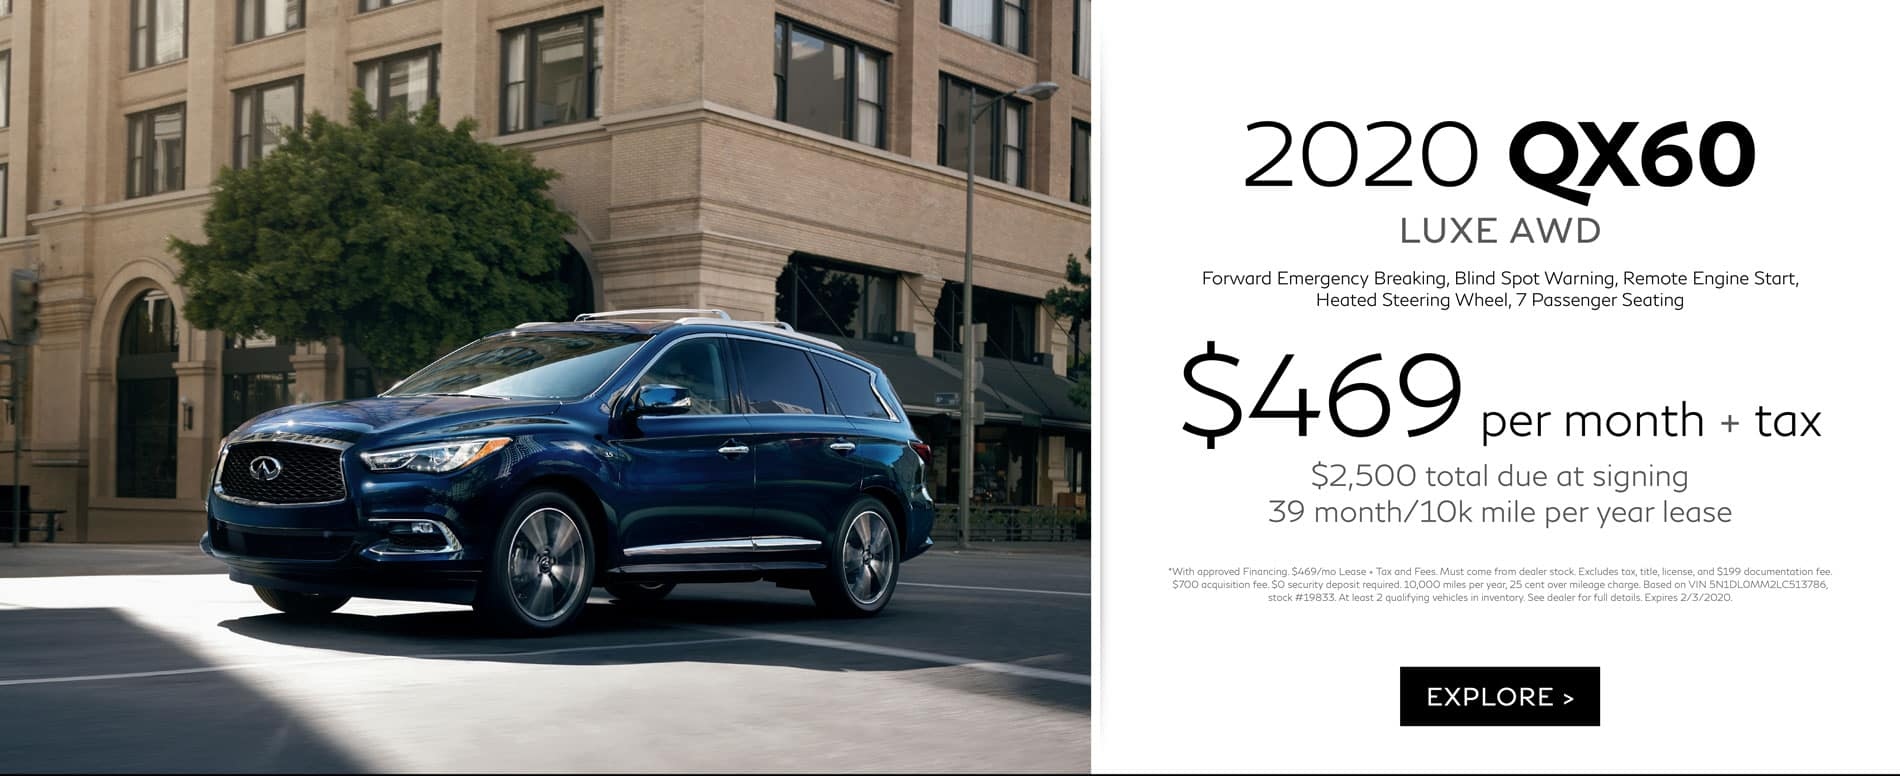 DR INFINITI January OX60 Offer | Lease for $469/mo